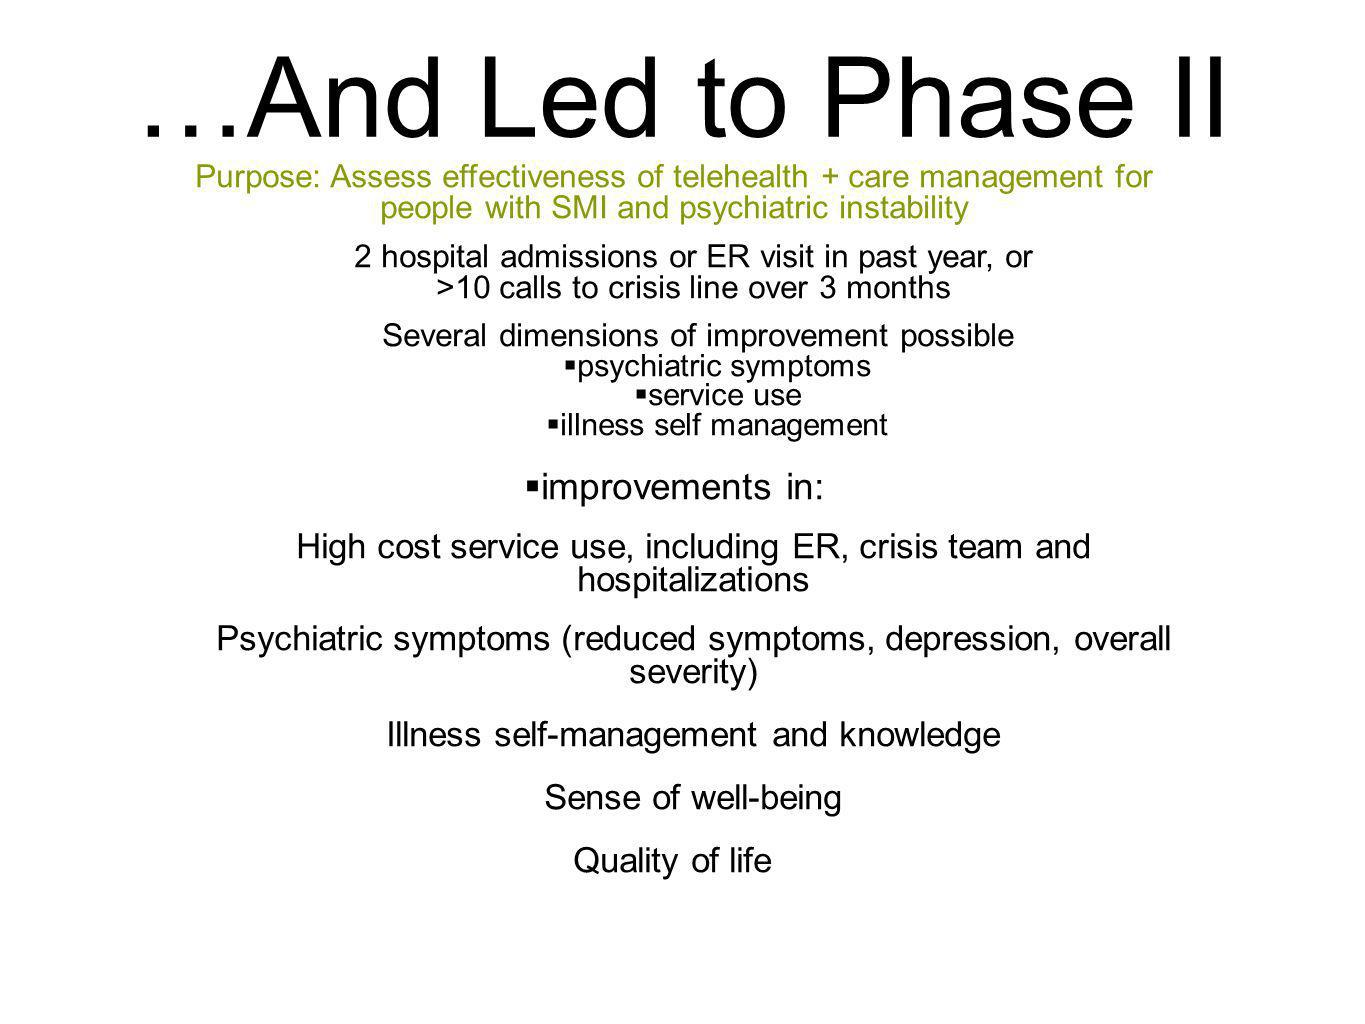 …And Led to Phase II Purpose: Assess effectiveness of telehealth + care management for people with SMI and psychiatric instability 2 hospital admissions or ER visit in past year, or >10 calls to crisis line over 3 months Several dimensions of improvement possible psychiatric symptoms service use illness self management improvements in: High cost service use, including ER, crisis team and hospitalizations Psychiatric symptoms (reduced symptoms, depression, overall severity) Illness self-management and knowledge Sense of well-being Quality of life